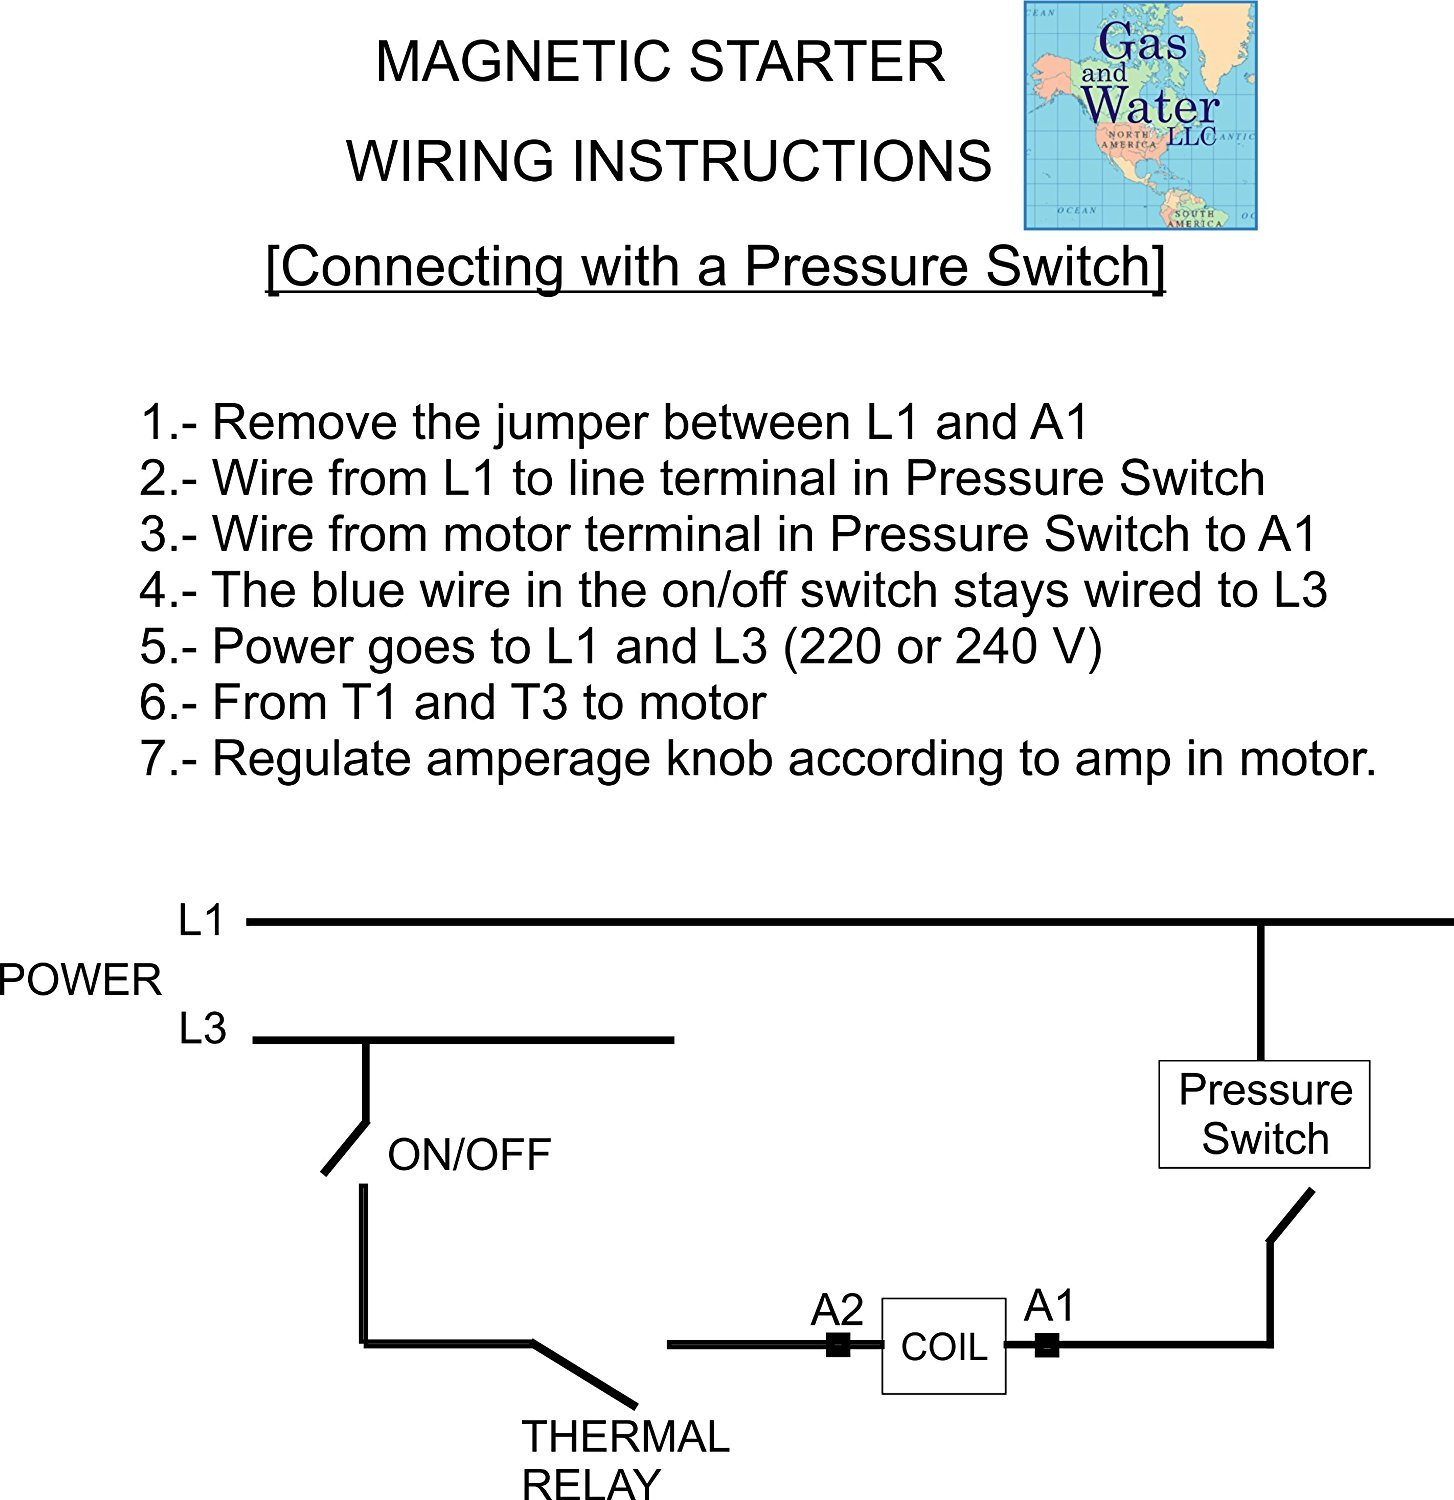 220 Volt Pressure Switch Wiring Diagram 39 Images For 71k1jng68ol Sl1500 Magnetic Electric Motor Starter Control 5 Hp Single Phase 240v